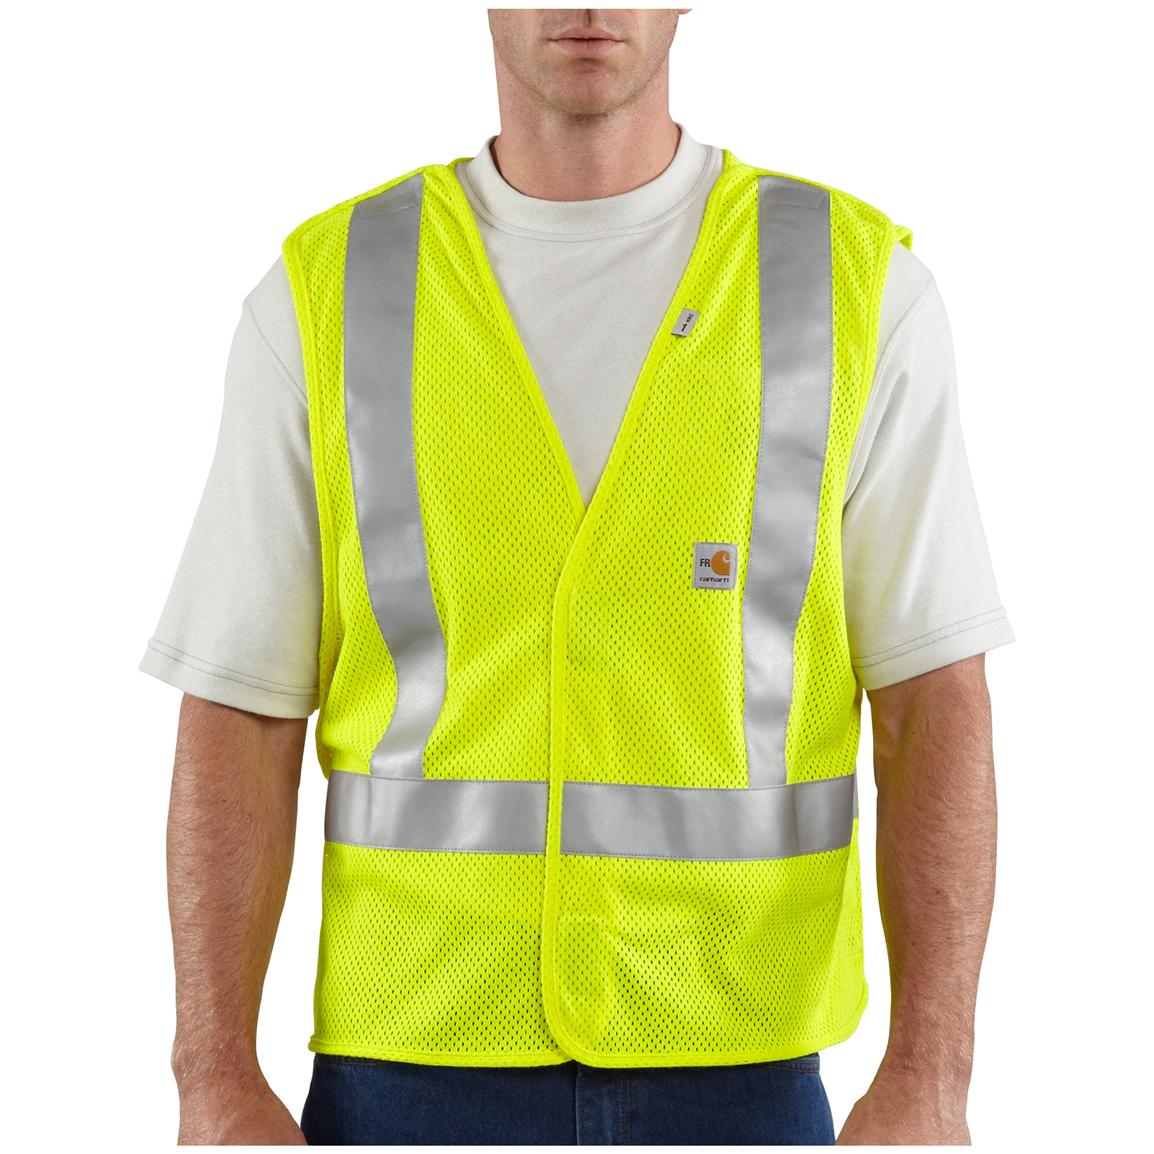 Carhartt® Flame-resistant High-visibility 5-point Breakaway Vest